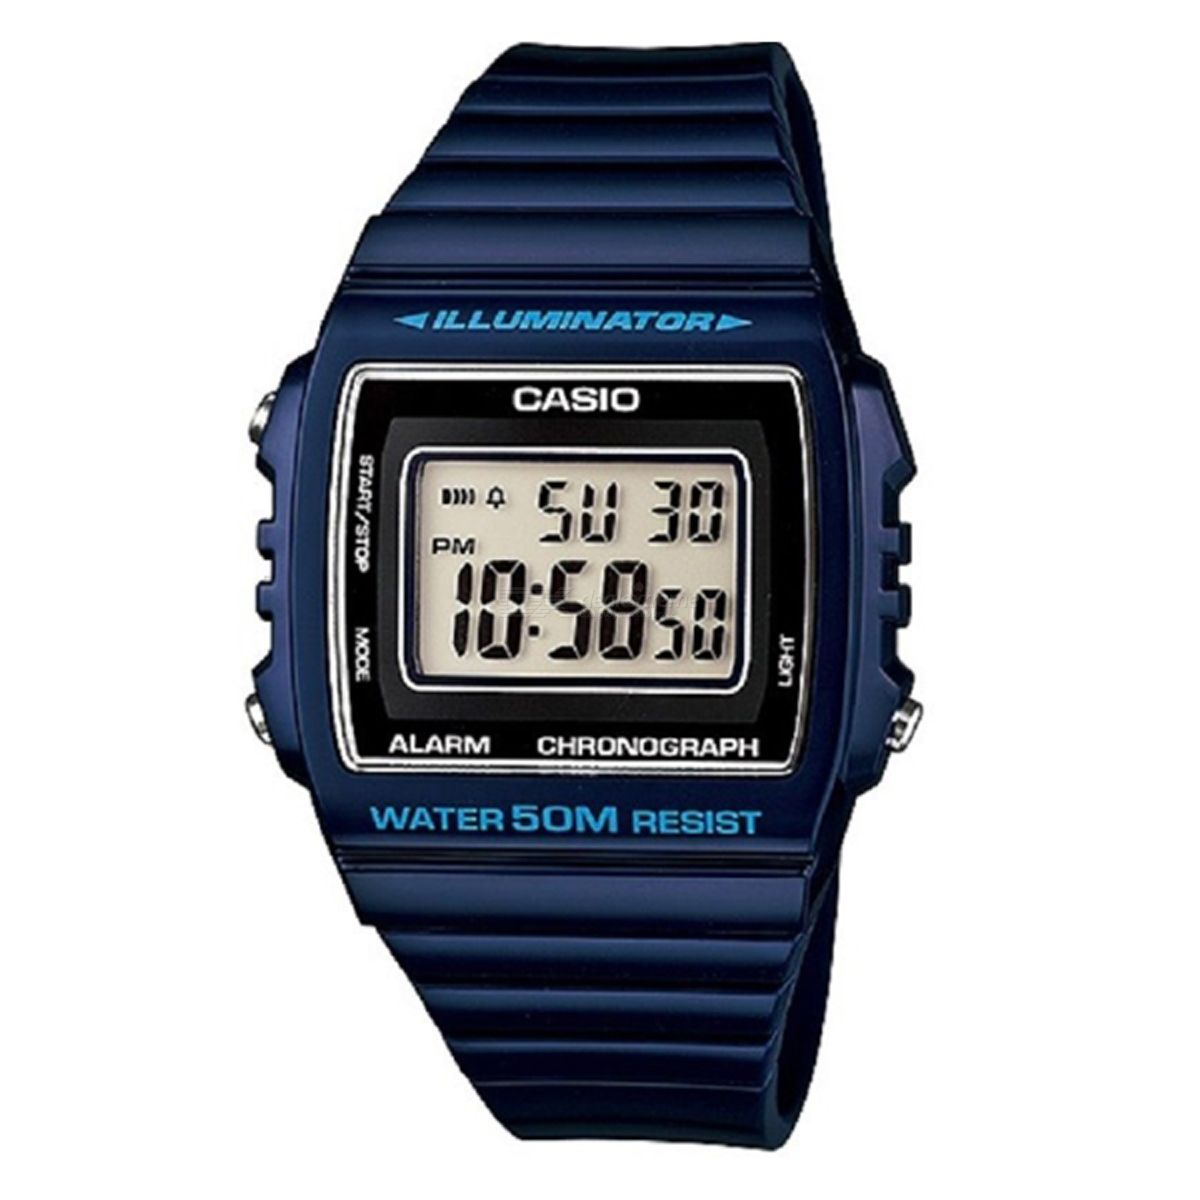 CASIO W-215H-2AVDF Men's Wristwatch - Blue + Black (Without Box)